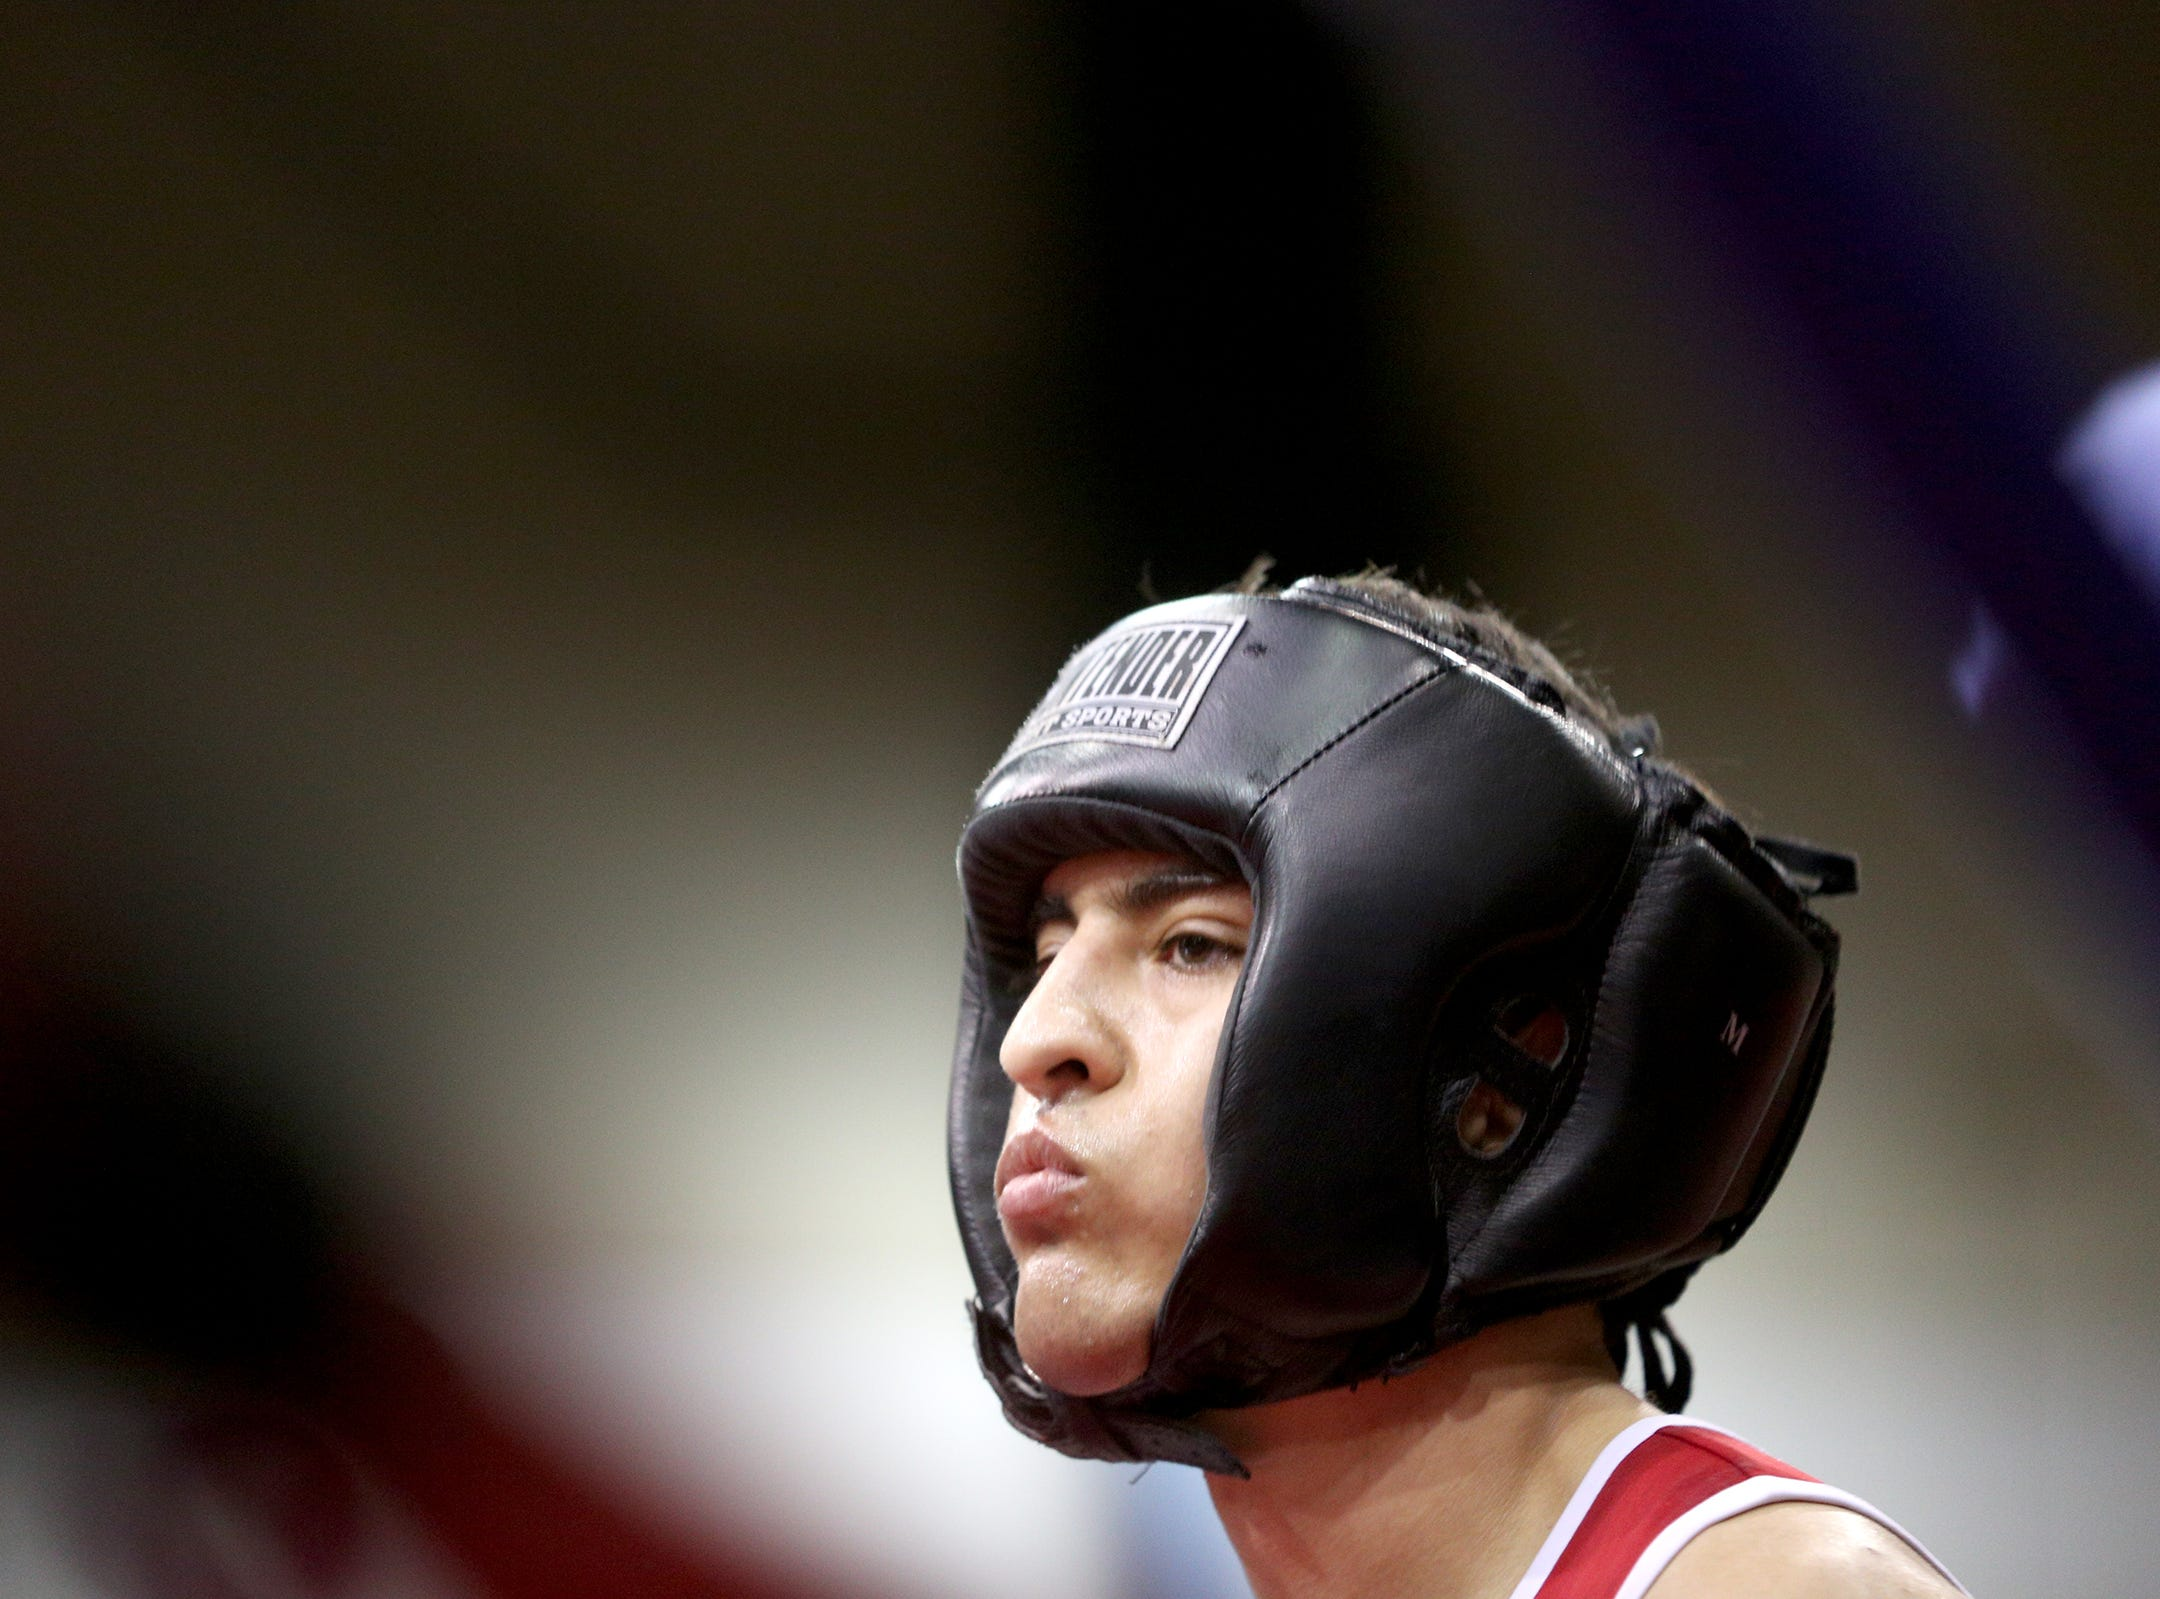 Boxer Jonathan Pena of Salem before his match at the Oregon Golden Gloves championship matches at the Salem Armory on Saturday, Feb. 2, 2019.